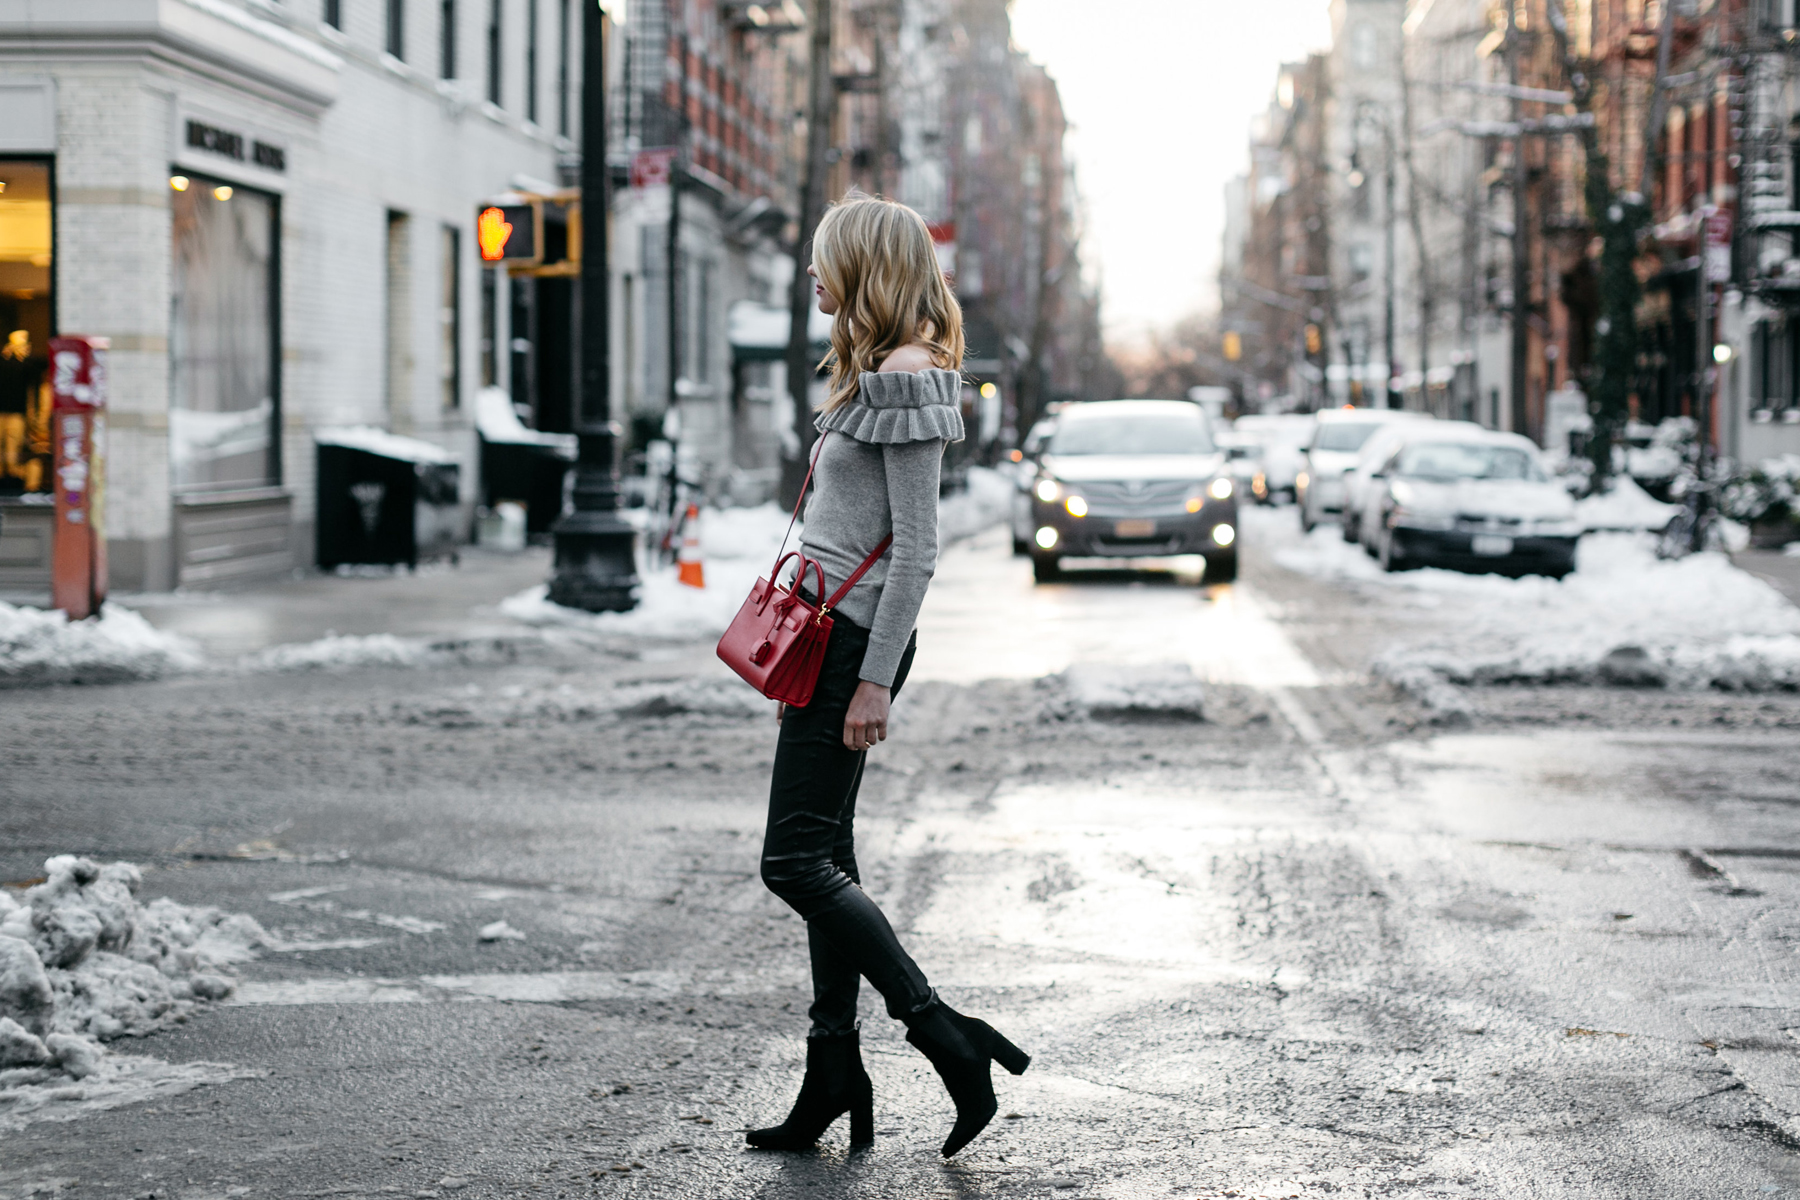 NYFW Fall/Winter 2017, Streetstyle, Club Monaco Grey Ruffle Off-the-Shoulder Sweater, Black Faux Leather Pants, Saint Laurent Sac de Jour Red, Black Ankle Booties